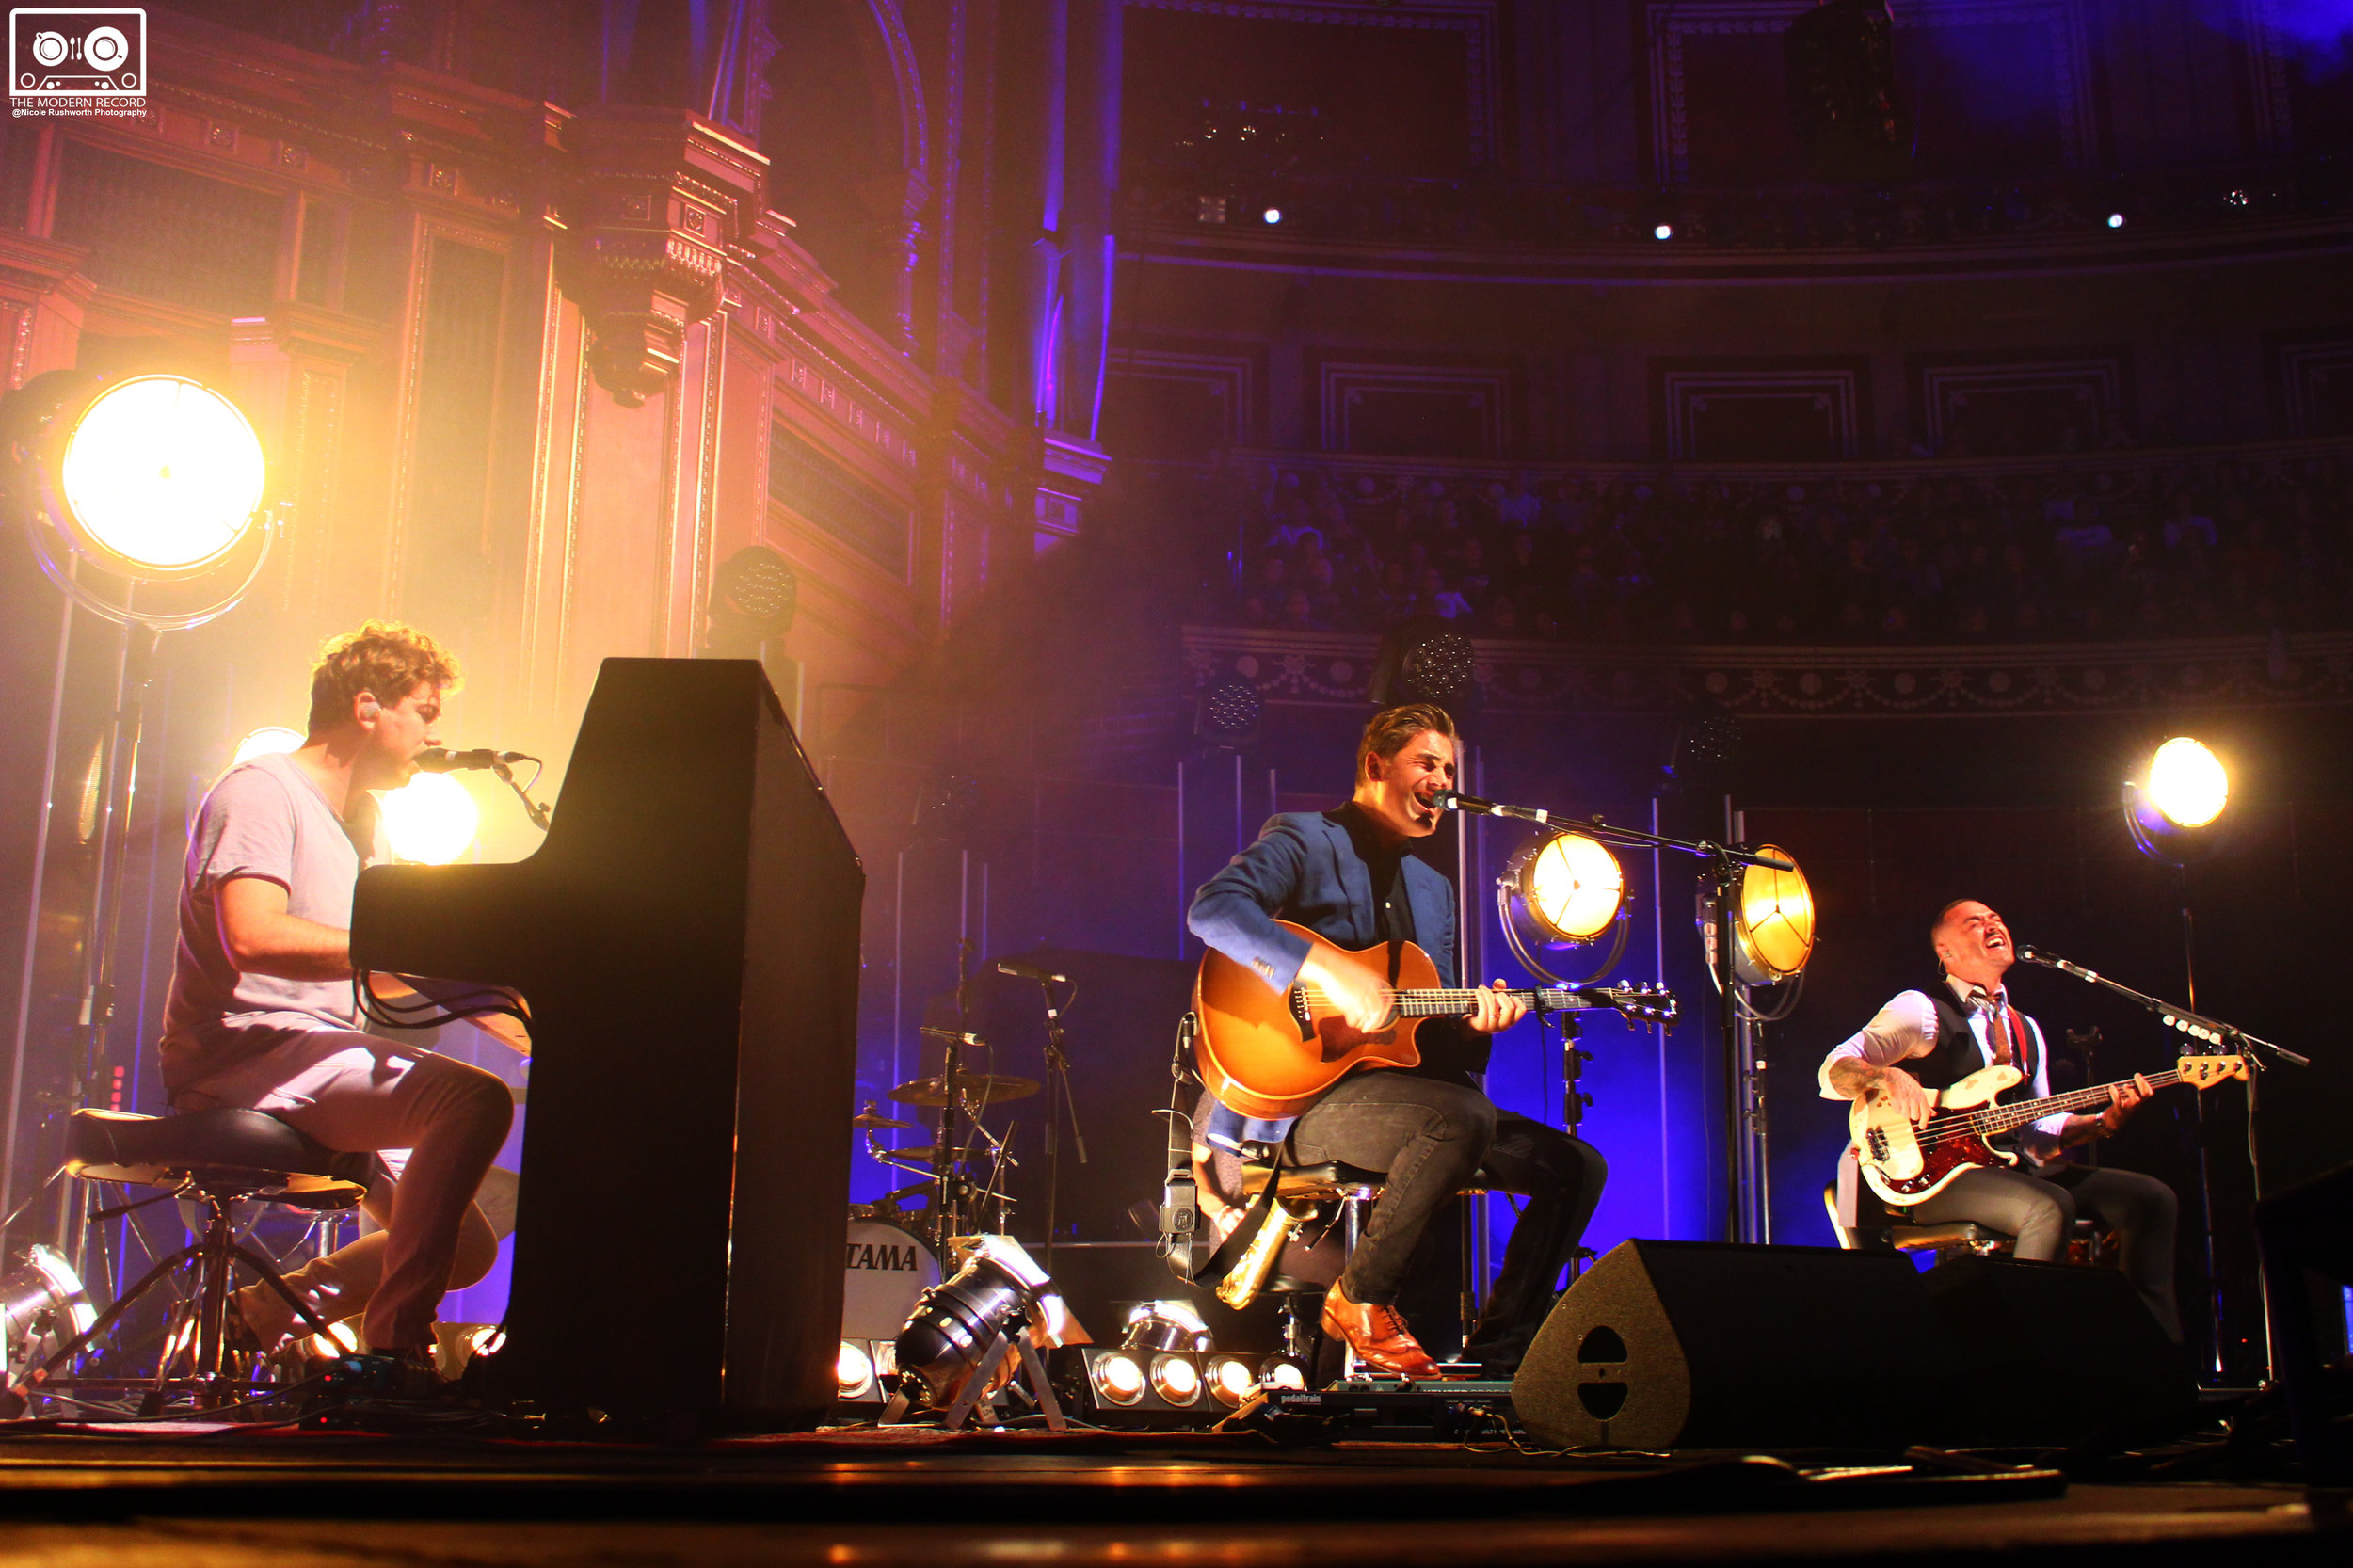 BUSTED PERFORMING DURING THEIR ACOUSTIC SET AT LONDON'S ROYAL ALBERT HALL - 17/10/2017  PICTURE BY: NICOLE RUSHWORTH PHOTOGRAPHY